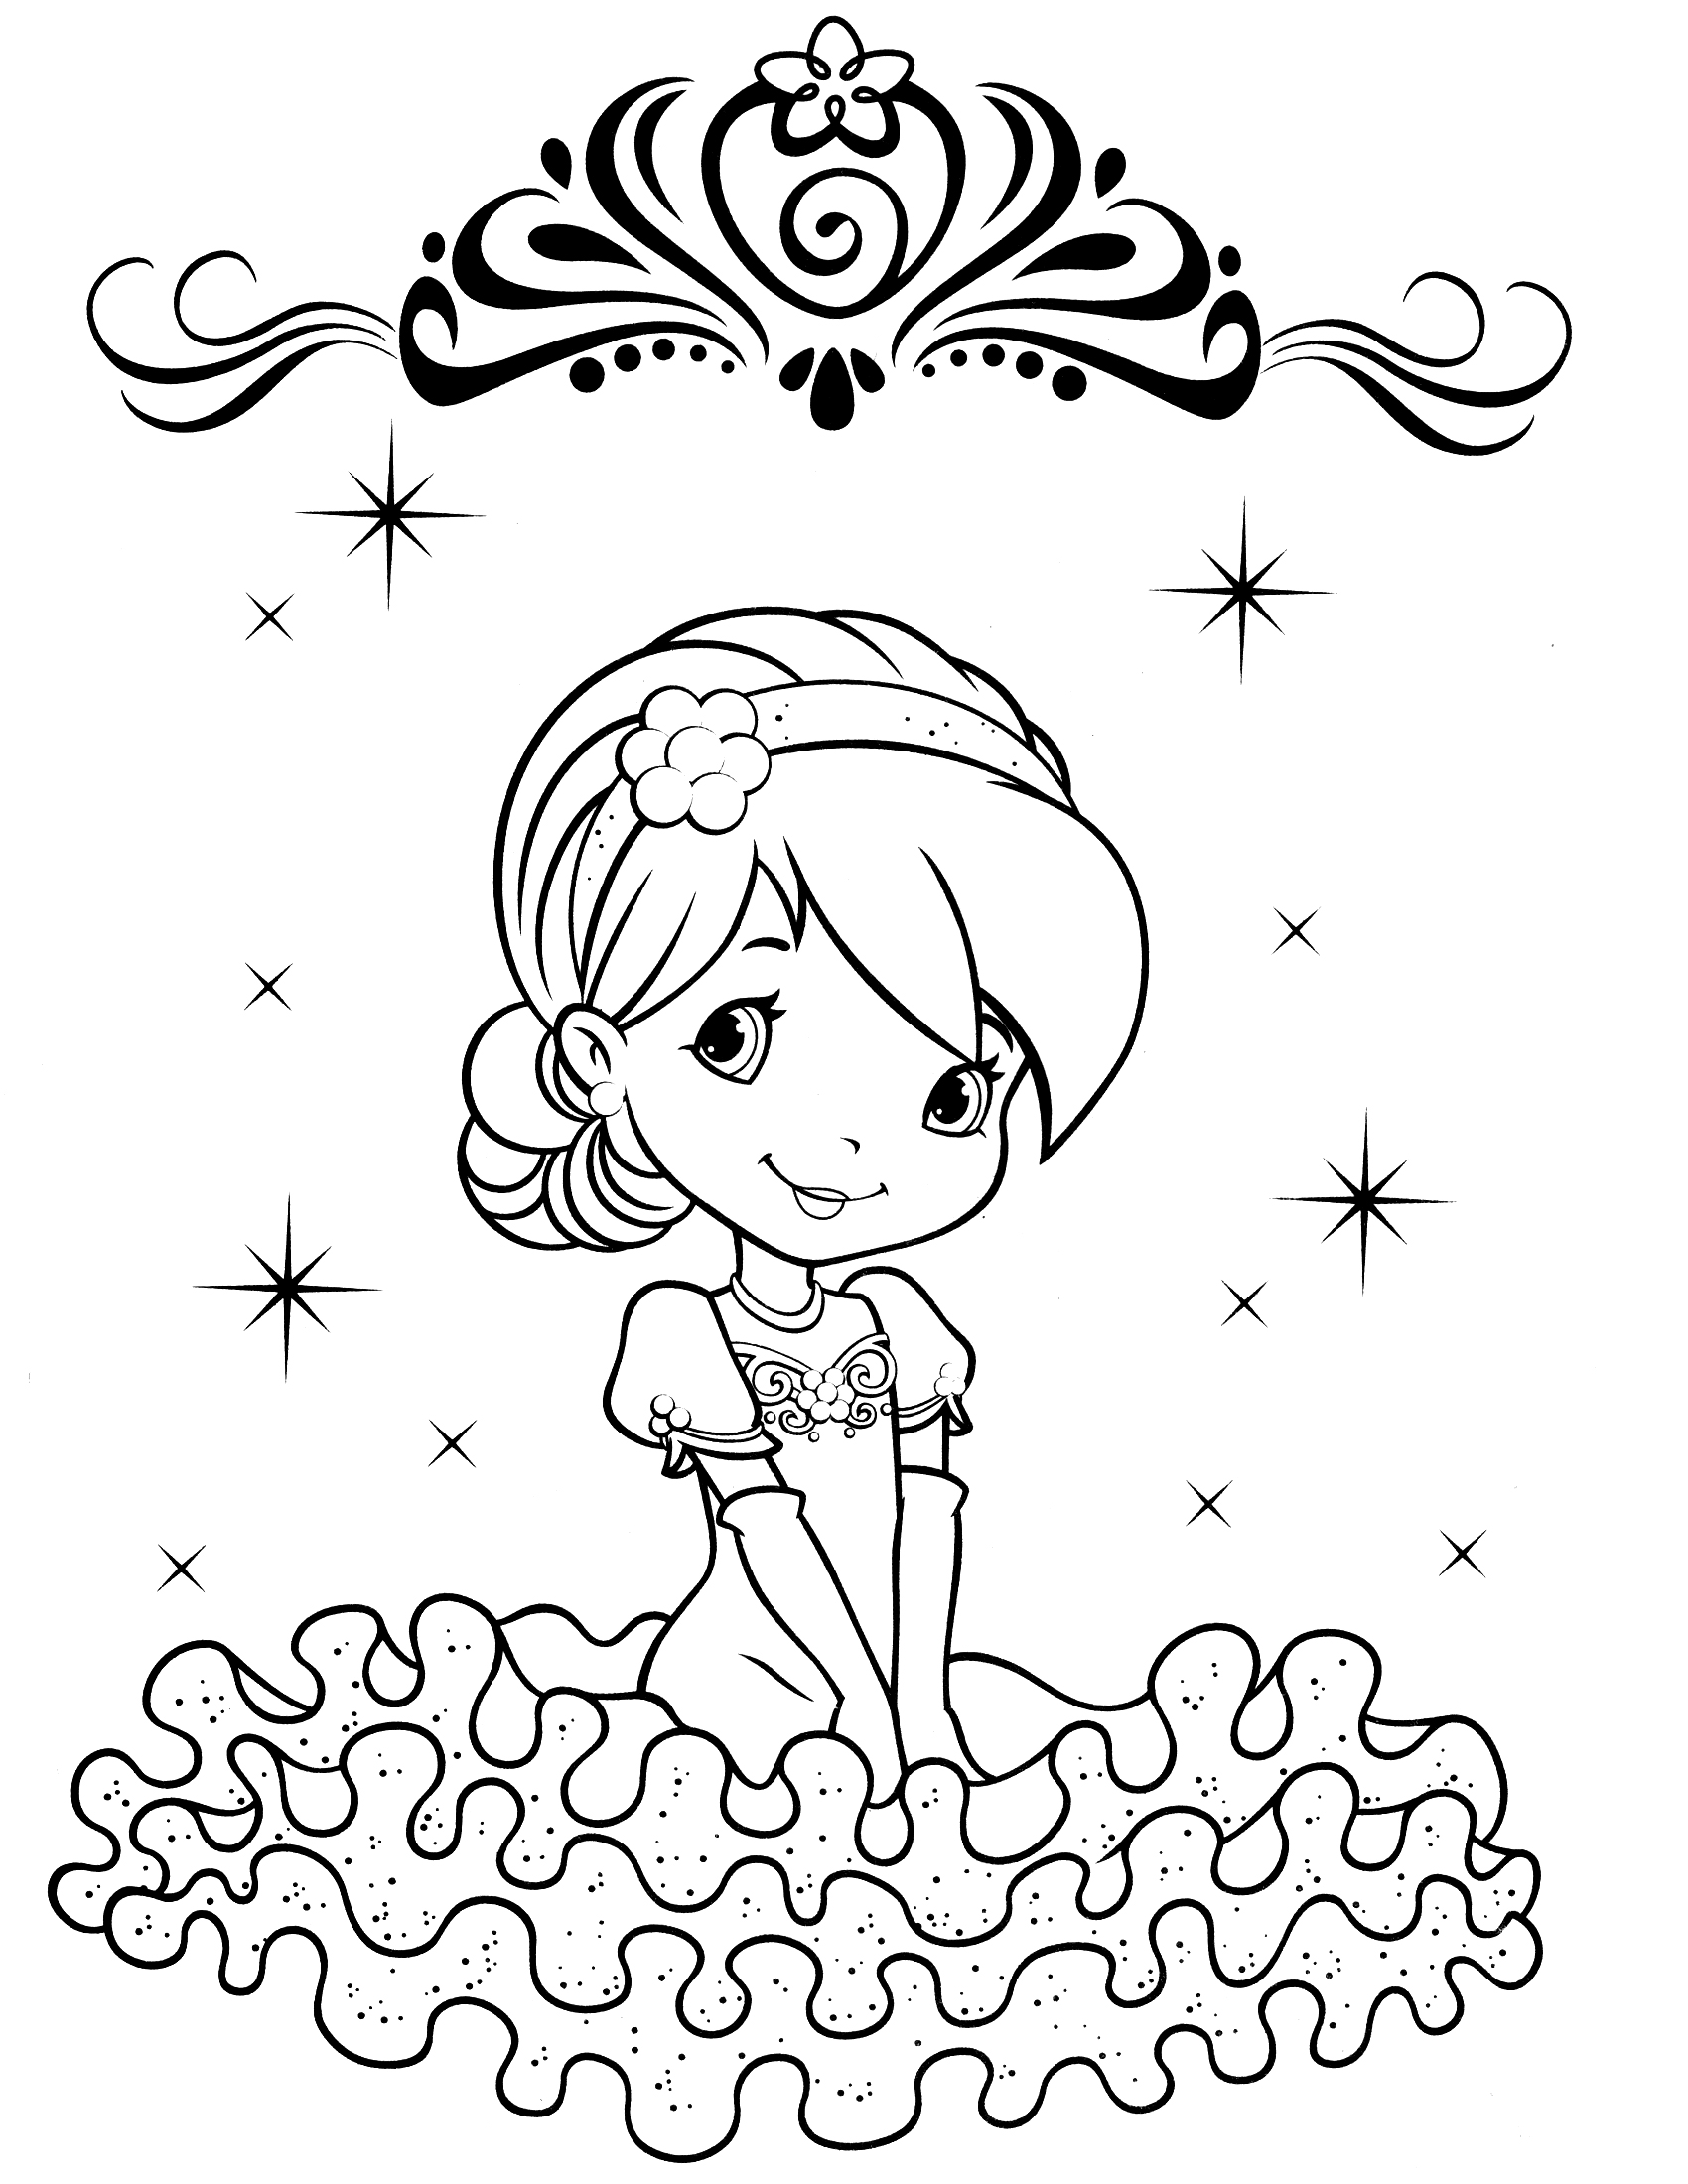 Strawberry Shortcake Coloring Pages Cool Coloring Pages 21